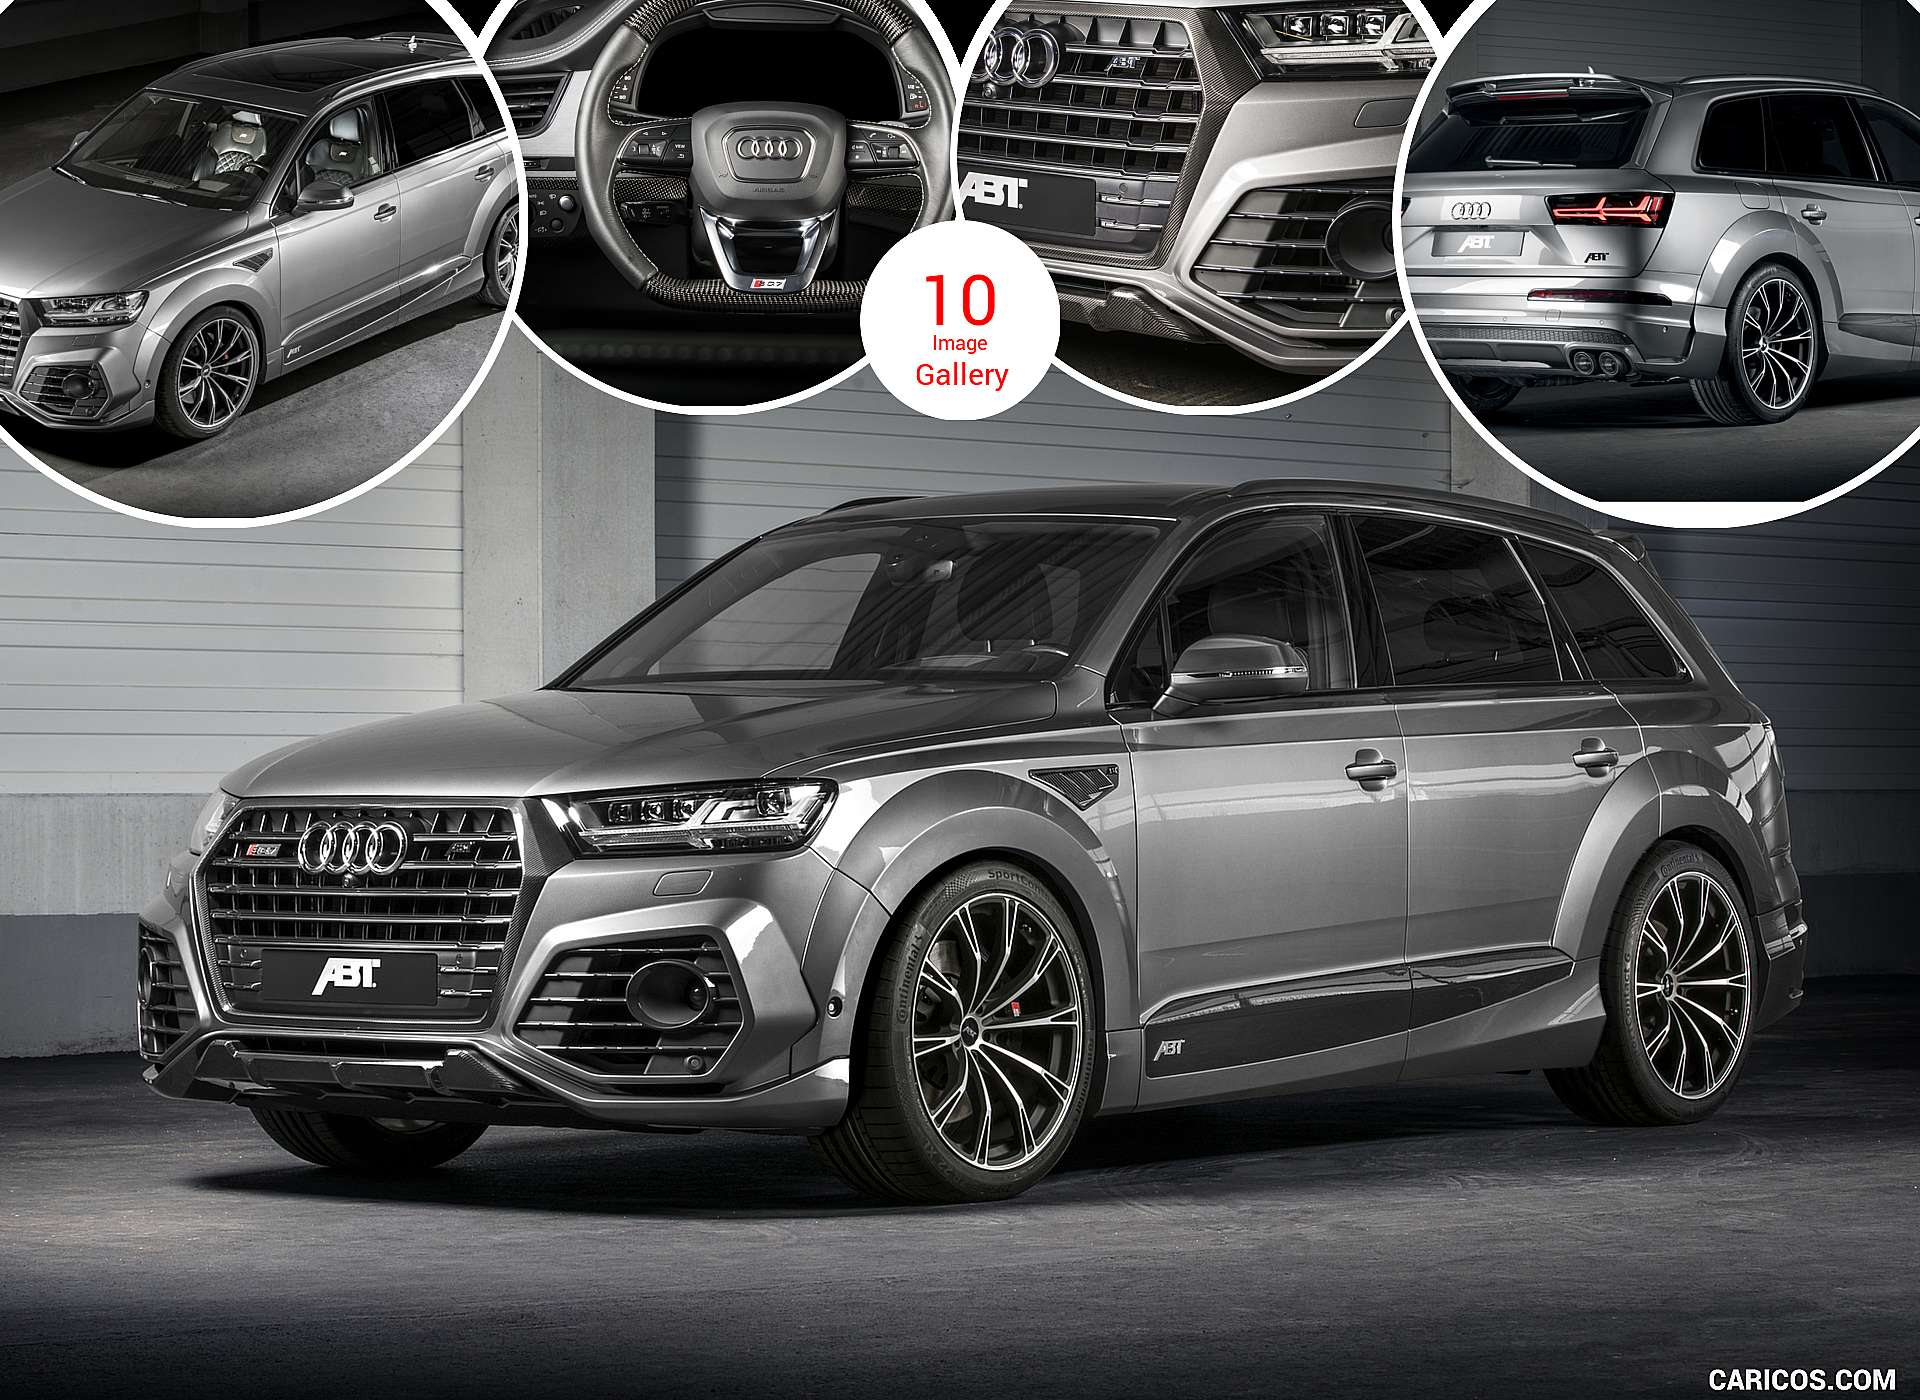 2017 abt sq7 widebody based on audi q7. Black Bedroom Furniture Sets. Home Design Ideas